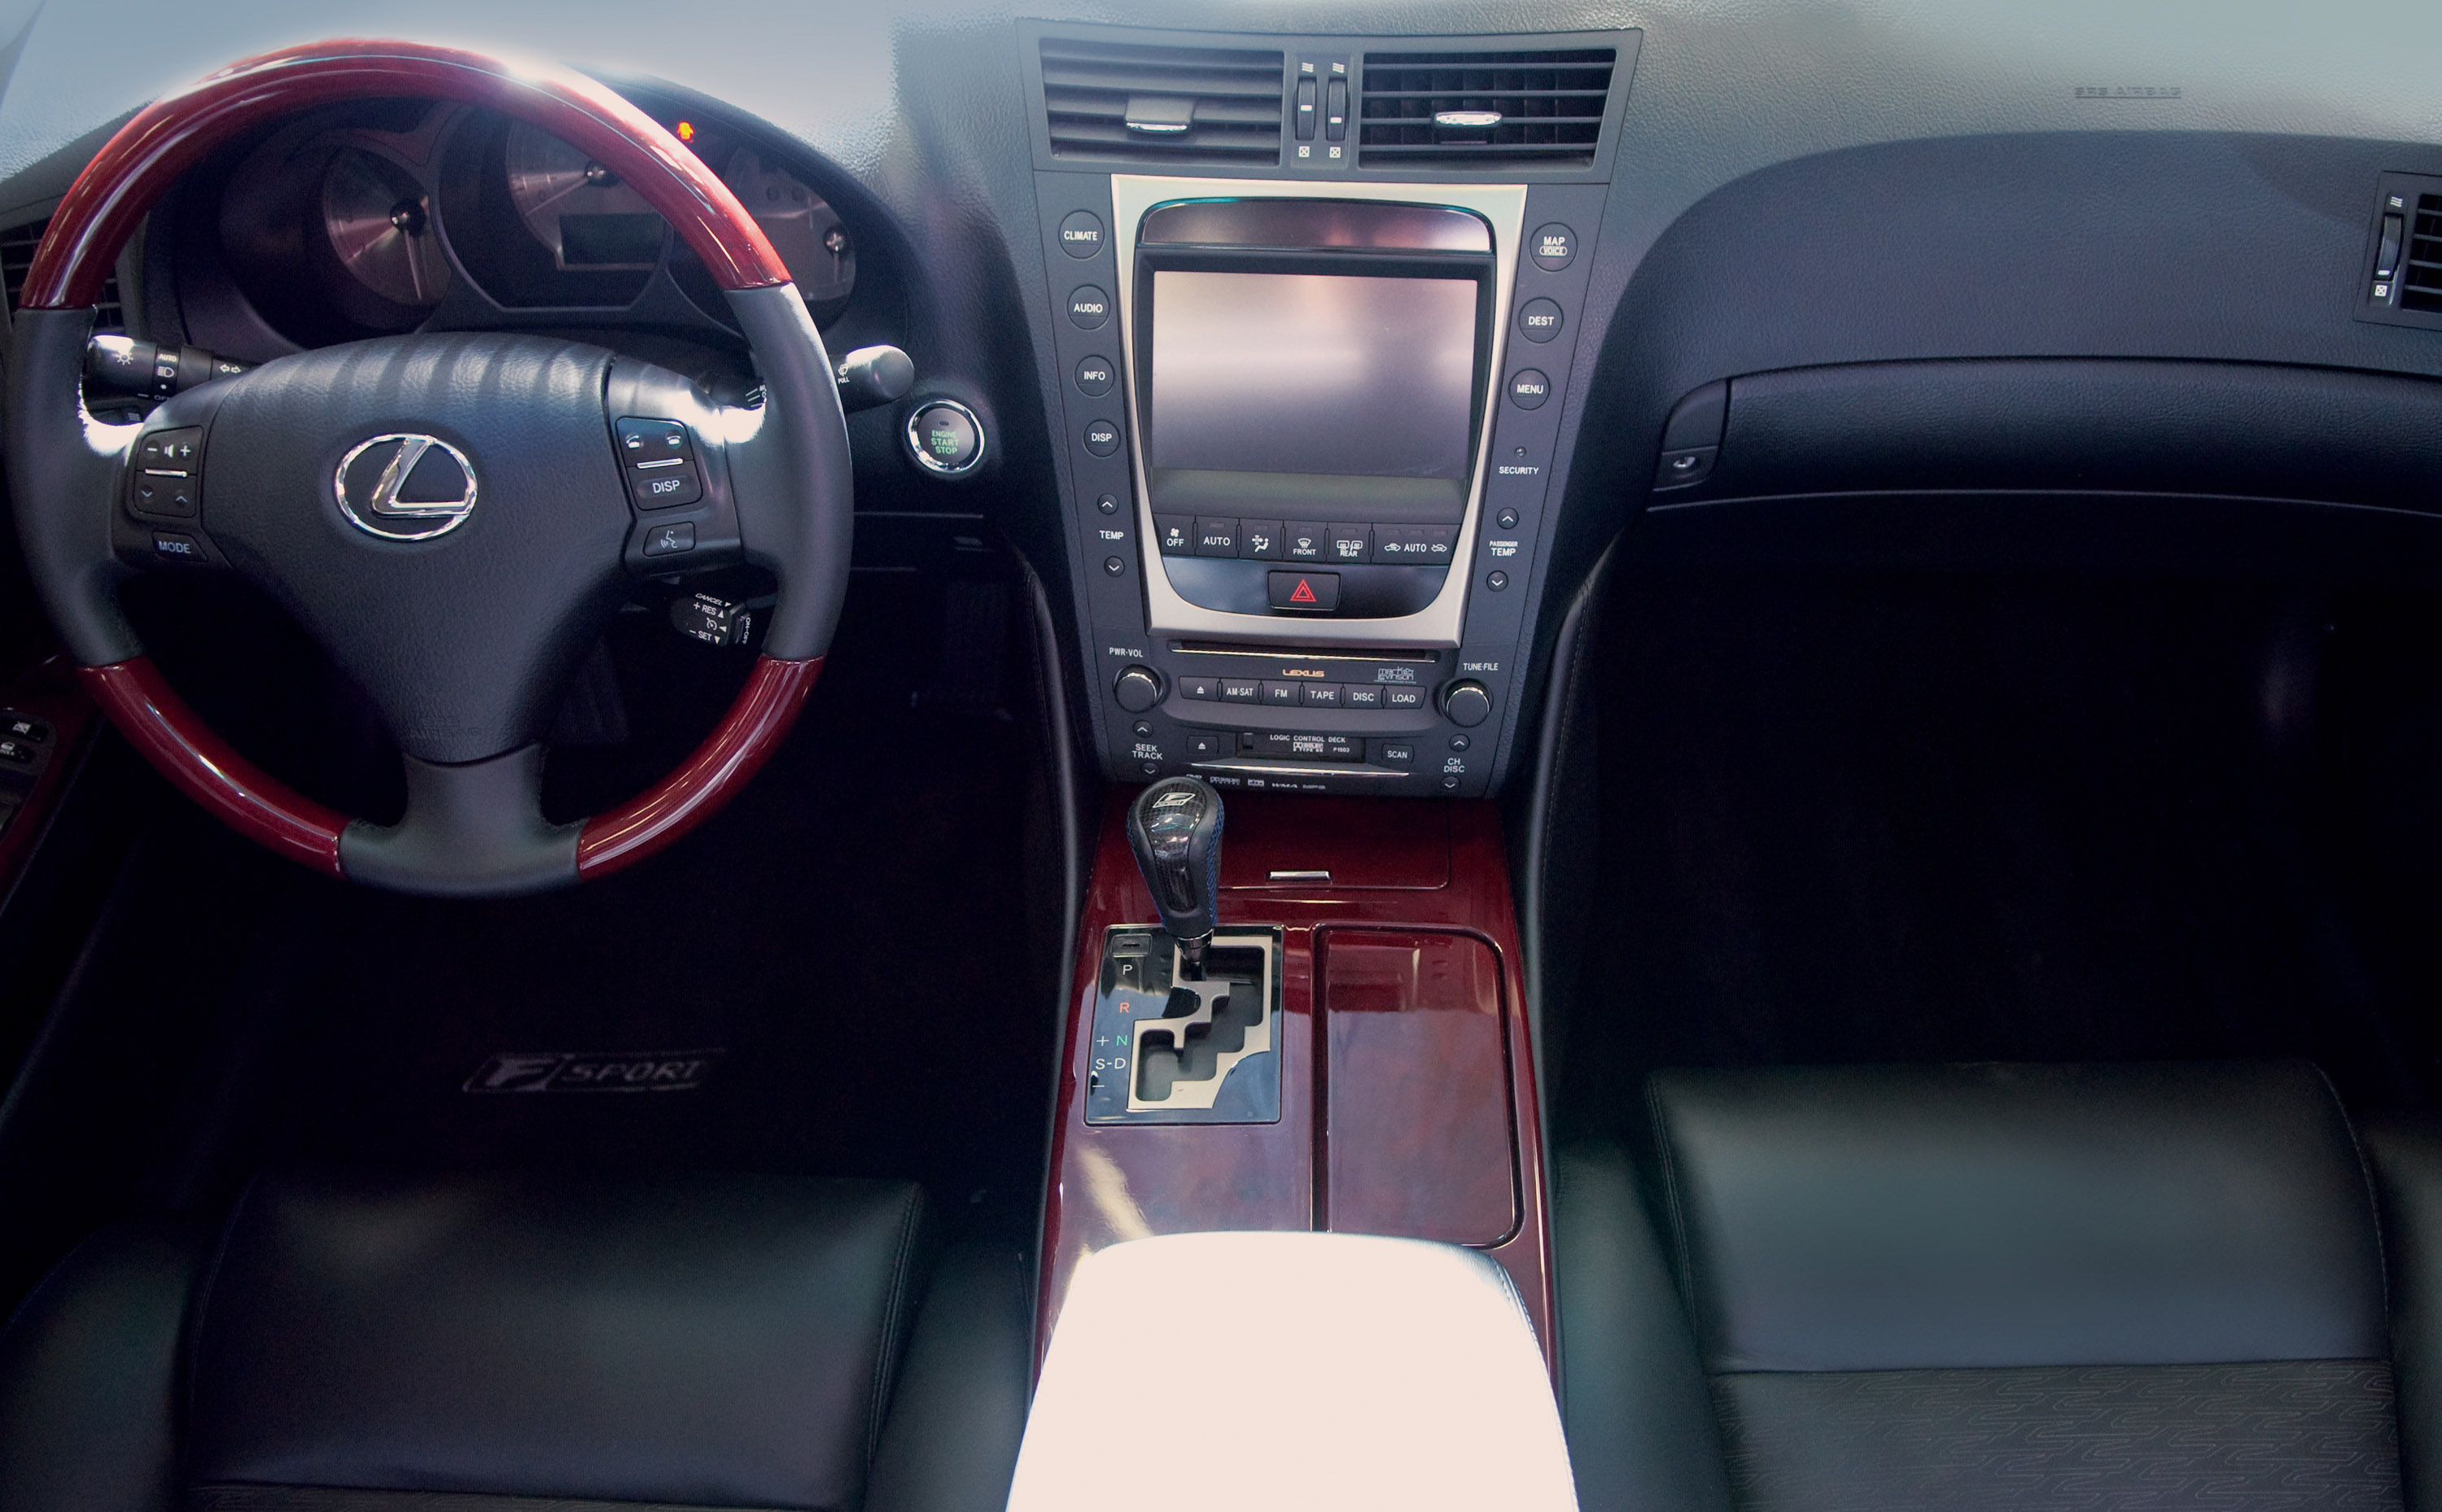 shifting cruising in a luxury front red gs gears the lexus liner